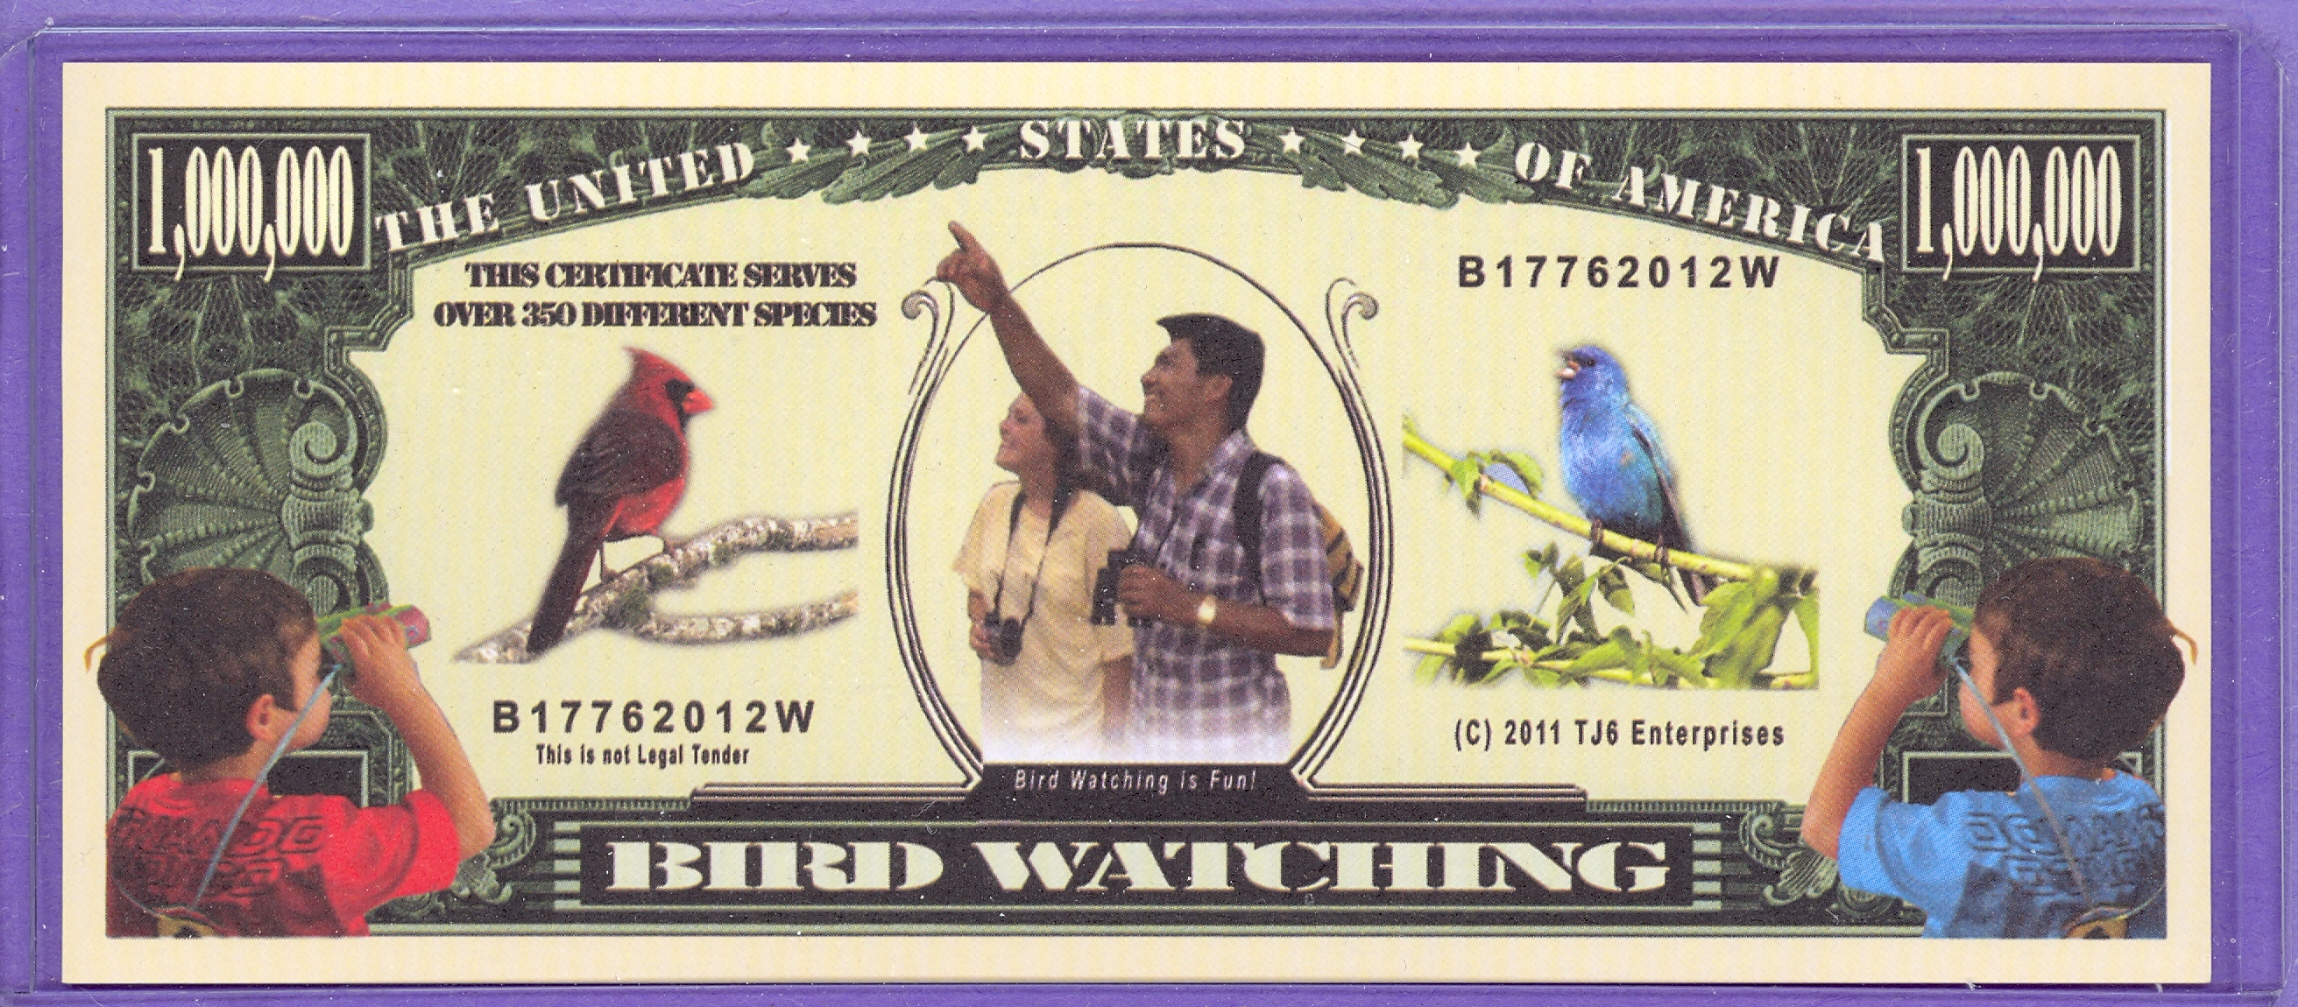 Bird Watching $1,000,000 Novelty Note